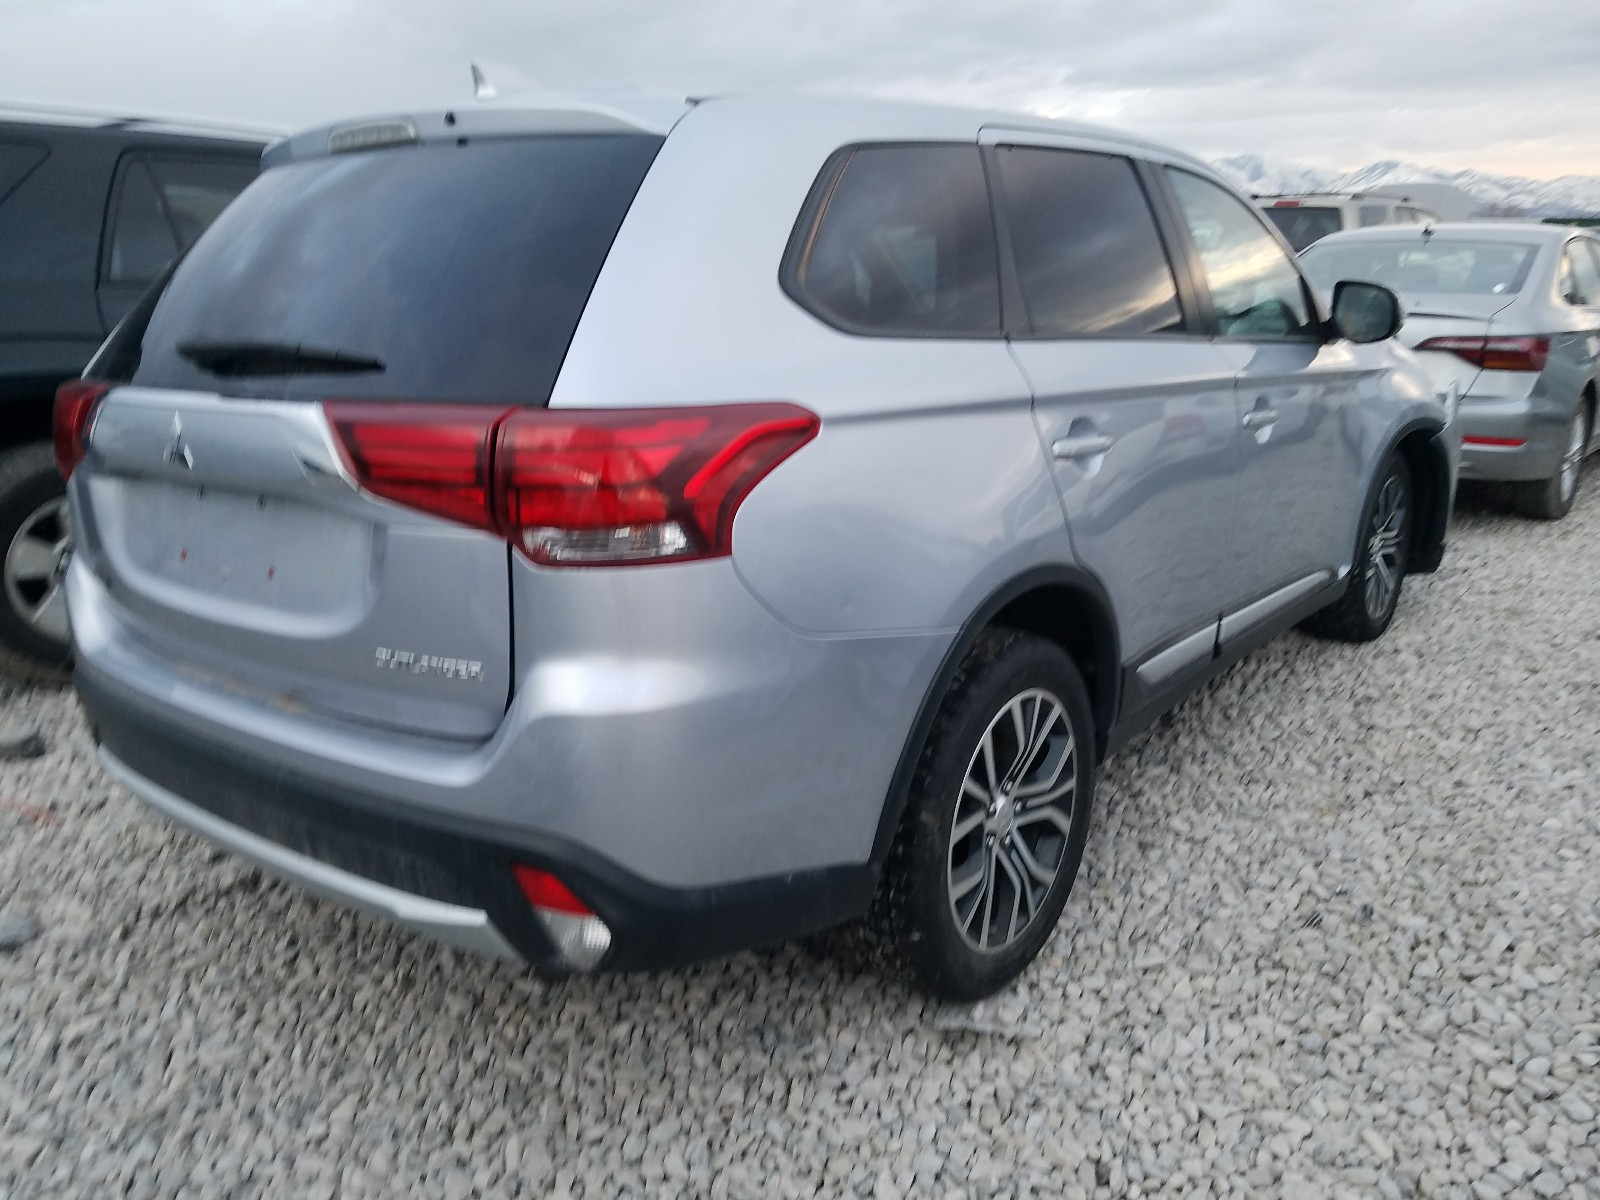 JA4AD3A37HZ043268 - 2017 Mitsubishi Outlander 2.4L rear view